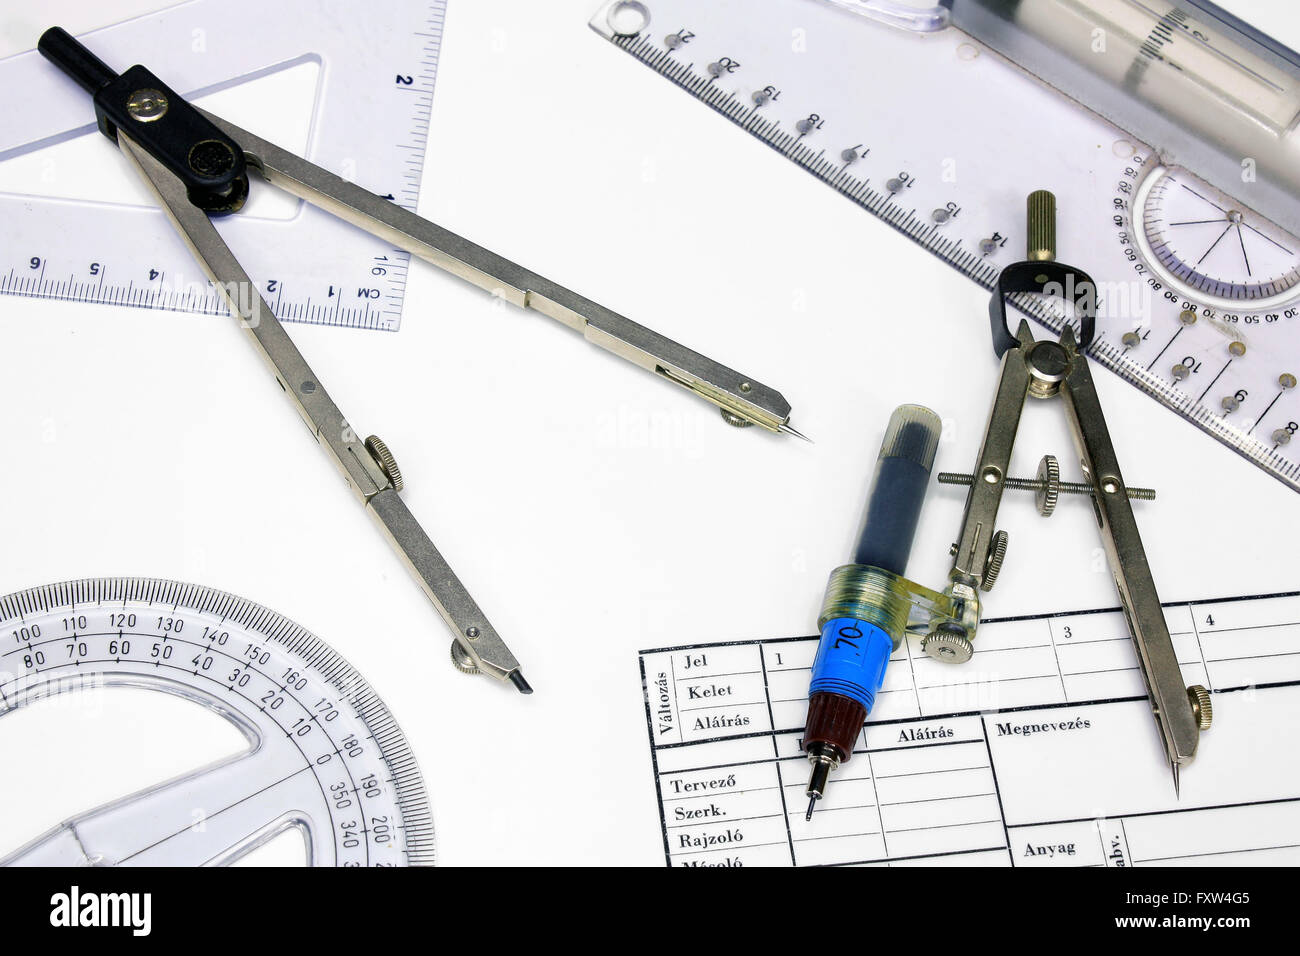 Technical tracing paper and rulers, calipers with ink - Stock Image